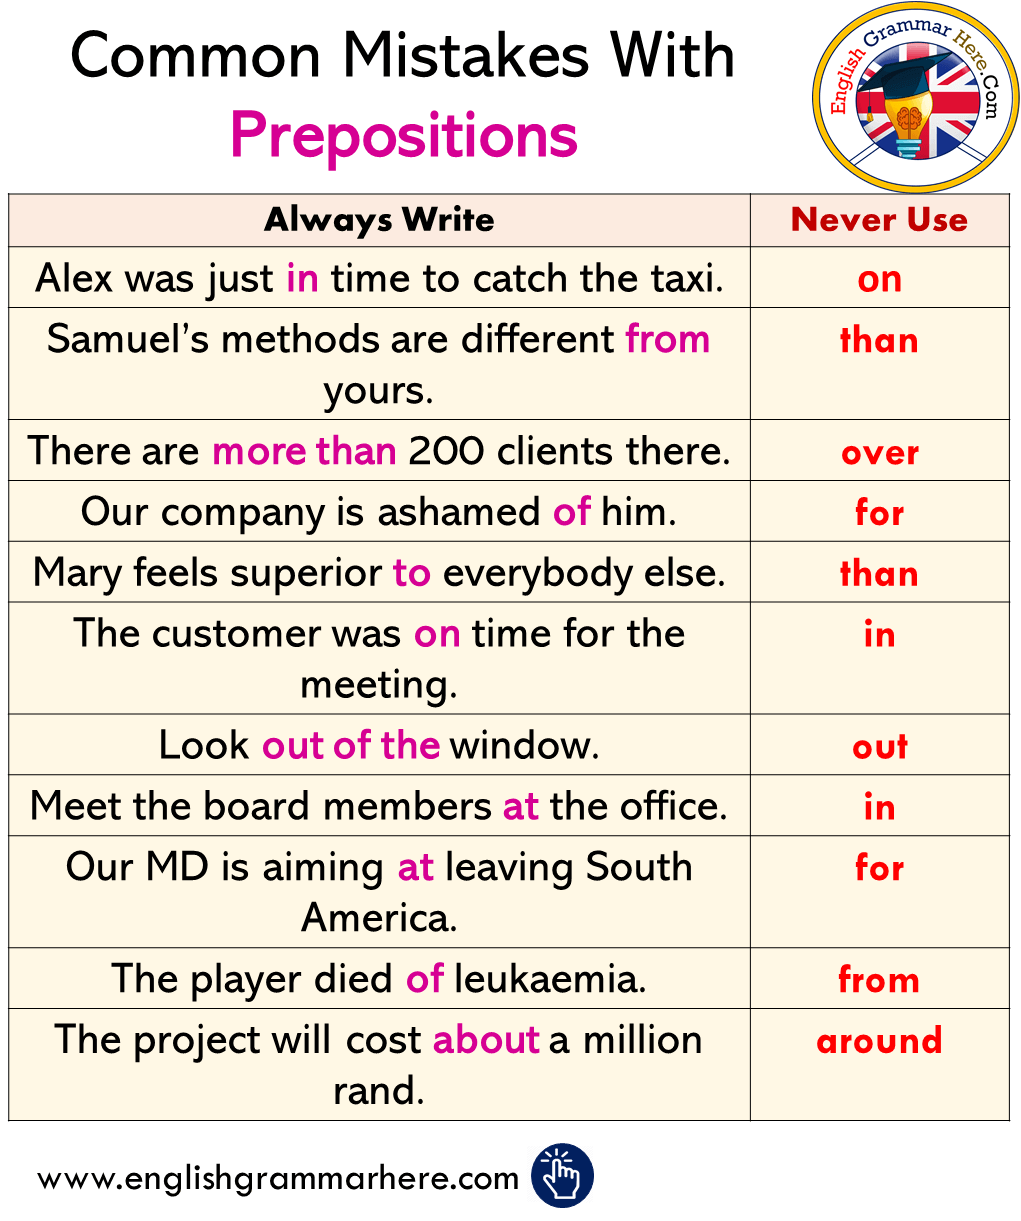 Common Mistakes With Prepositions in English